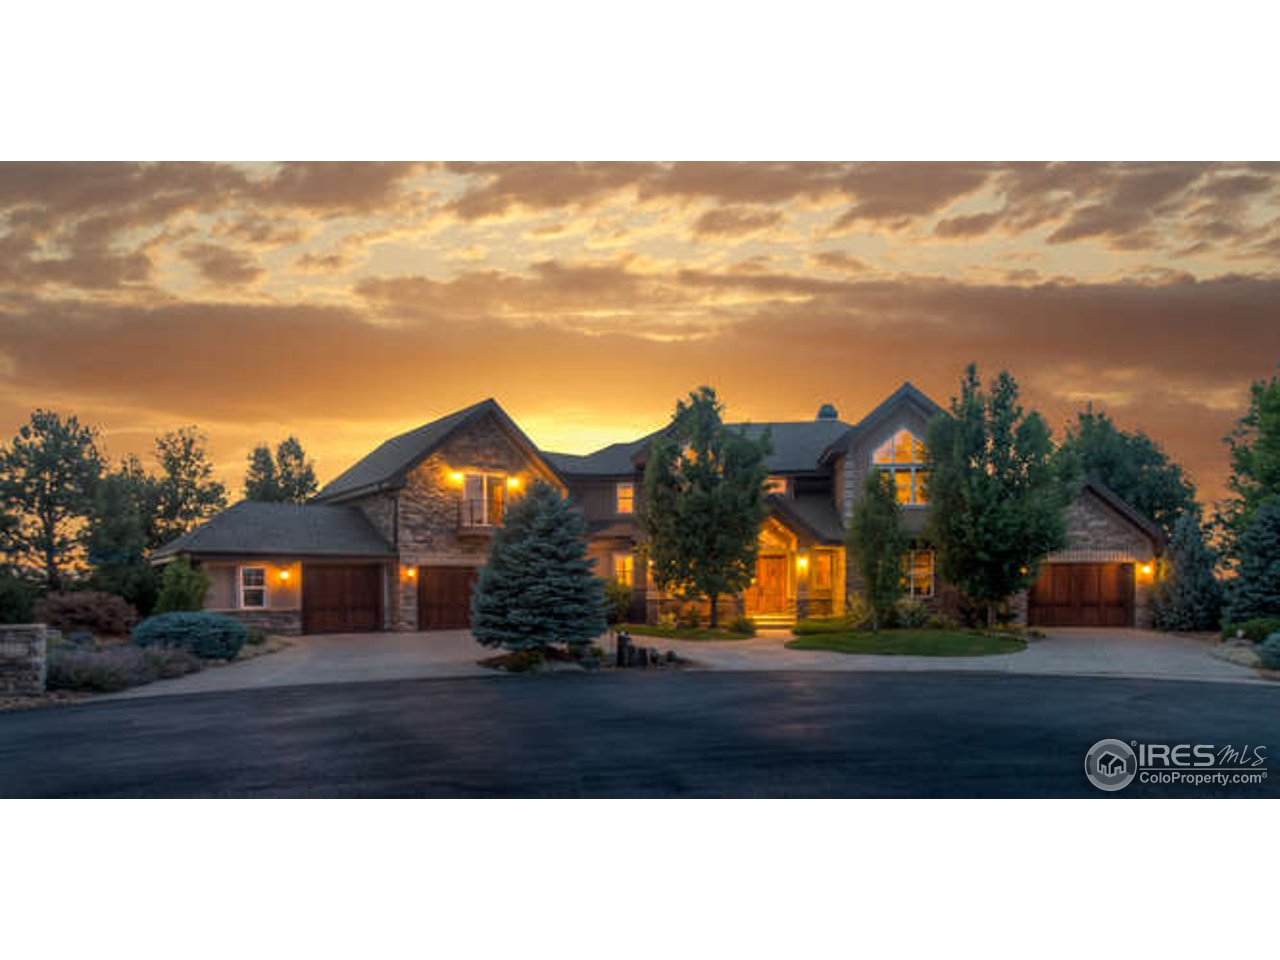 5791 Pelican Shores Ct, Longmont, CO 80504